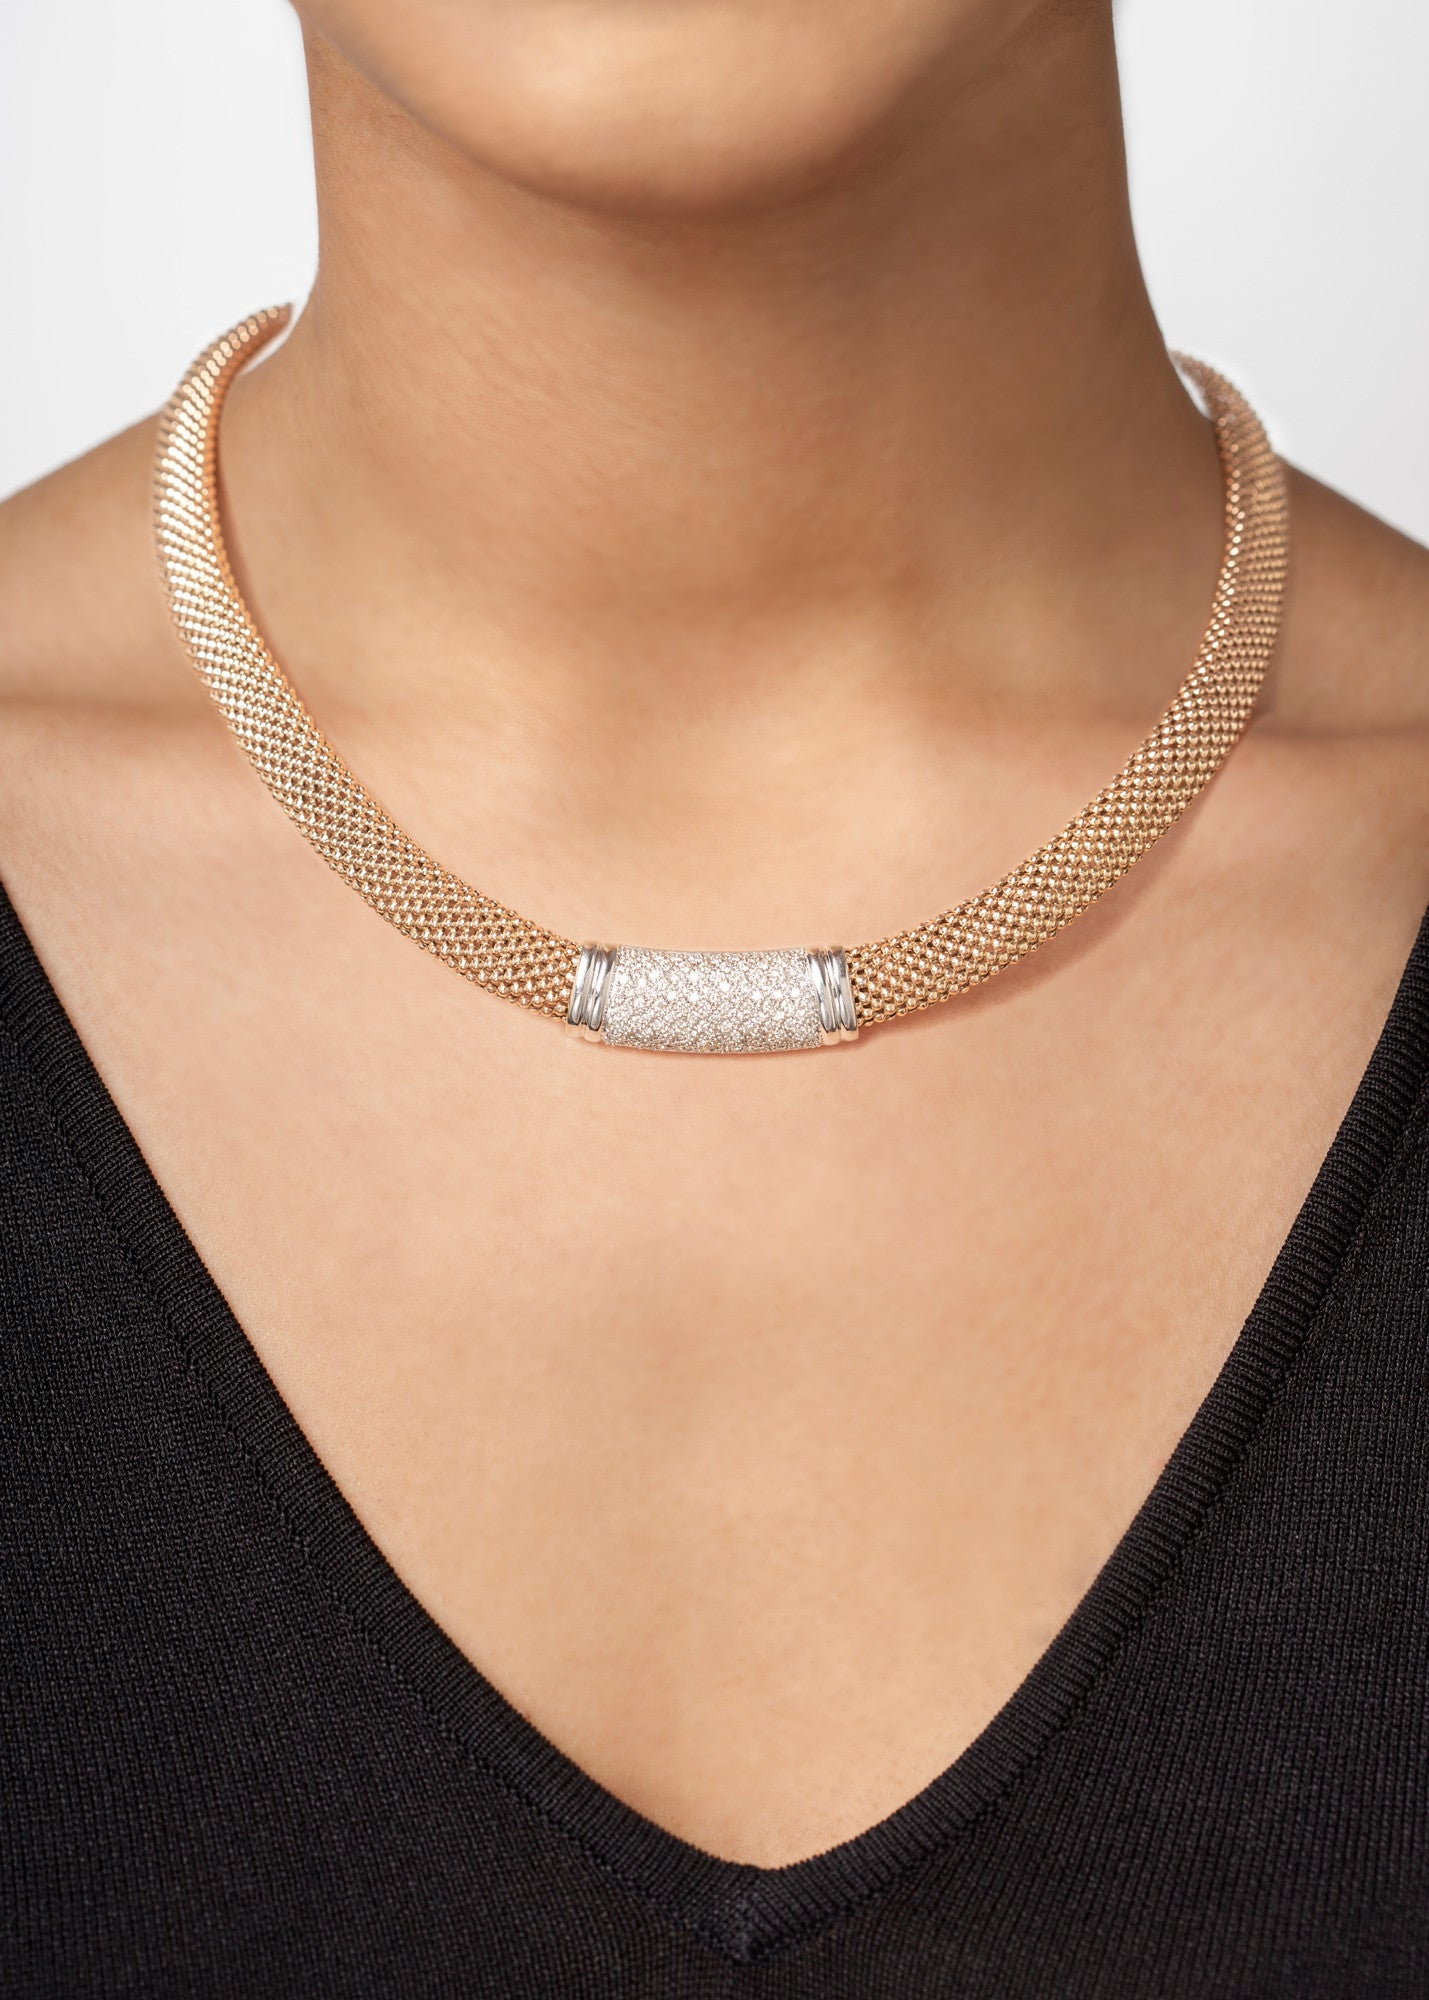 Mesh Gold & Pavé Diamond Necklace--40% OFF!